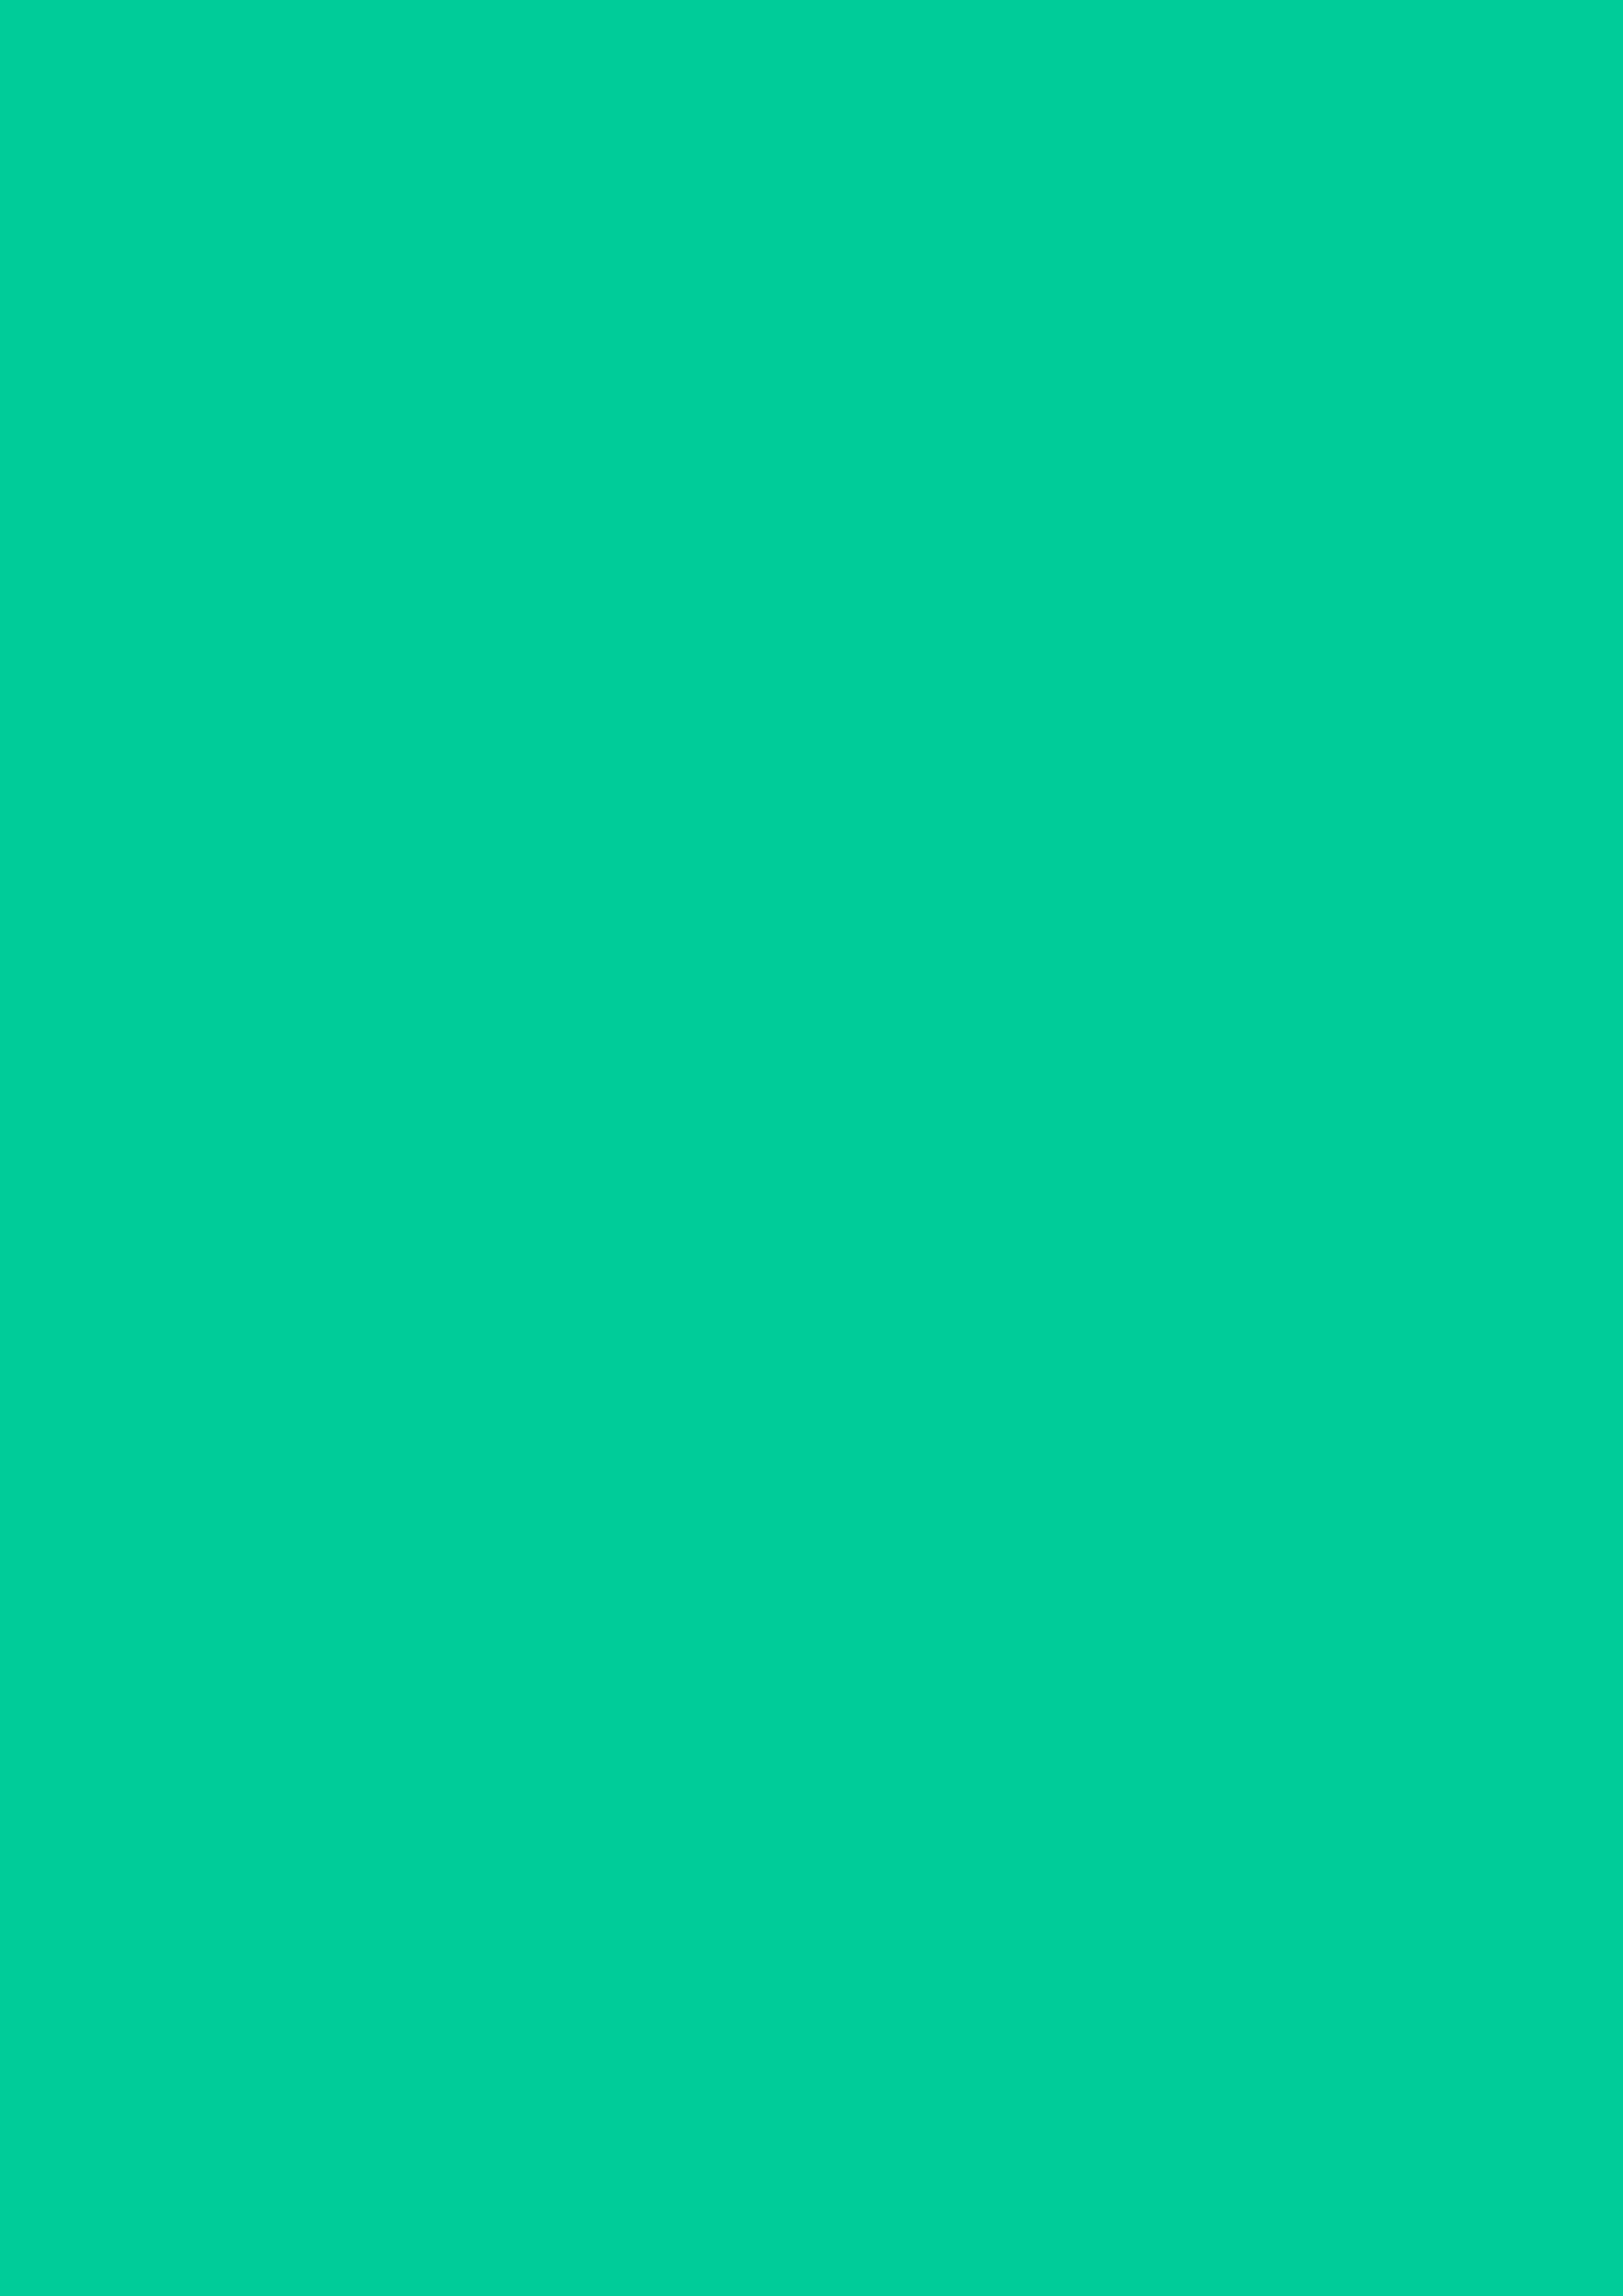 2480x3508 Caribbean Green Solid Color Background